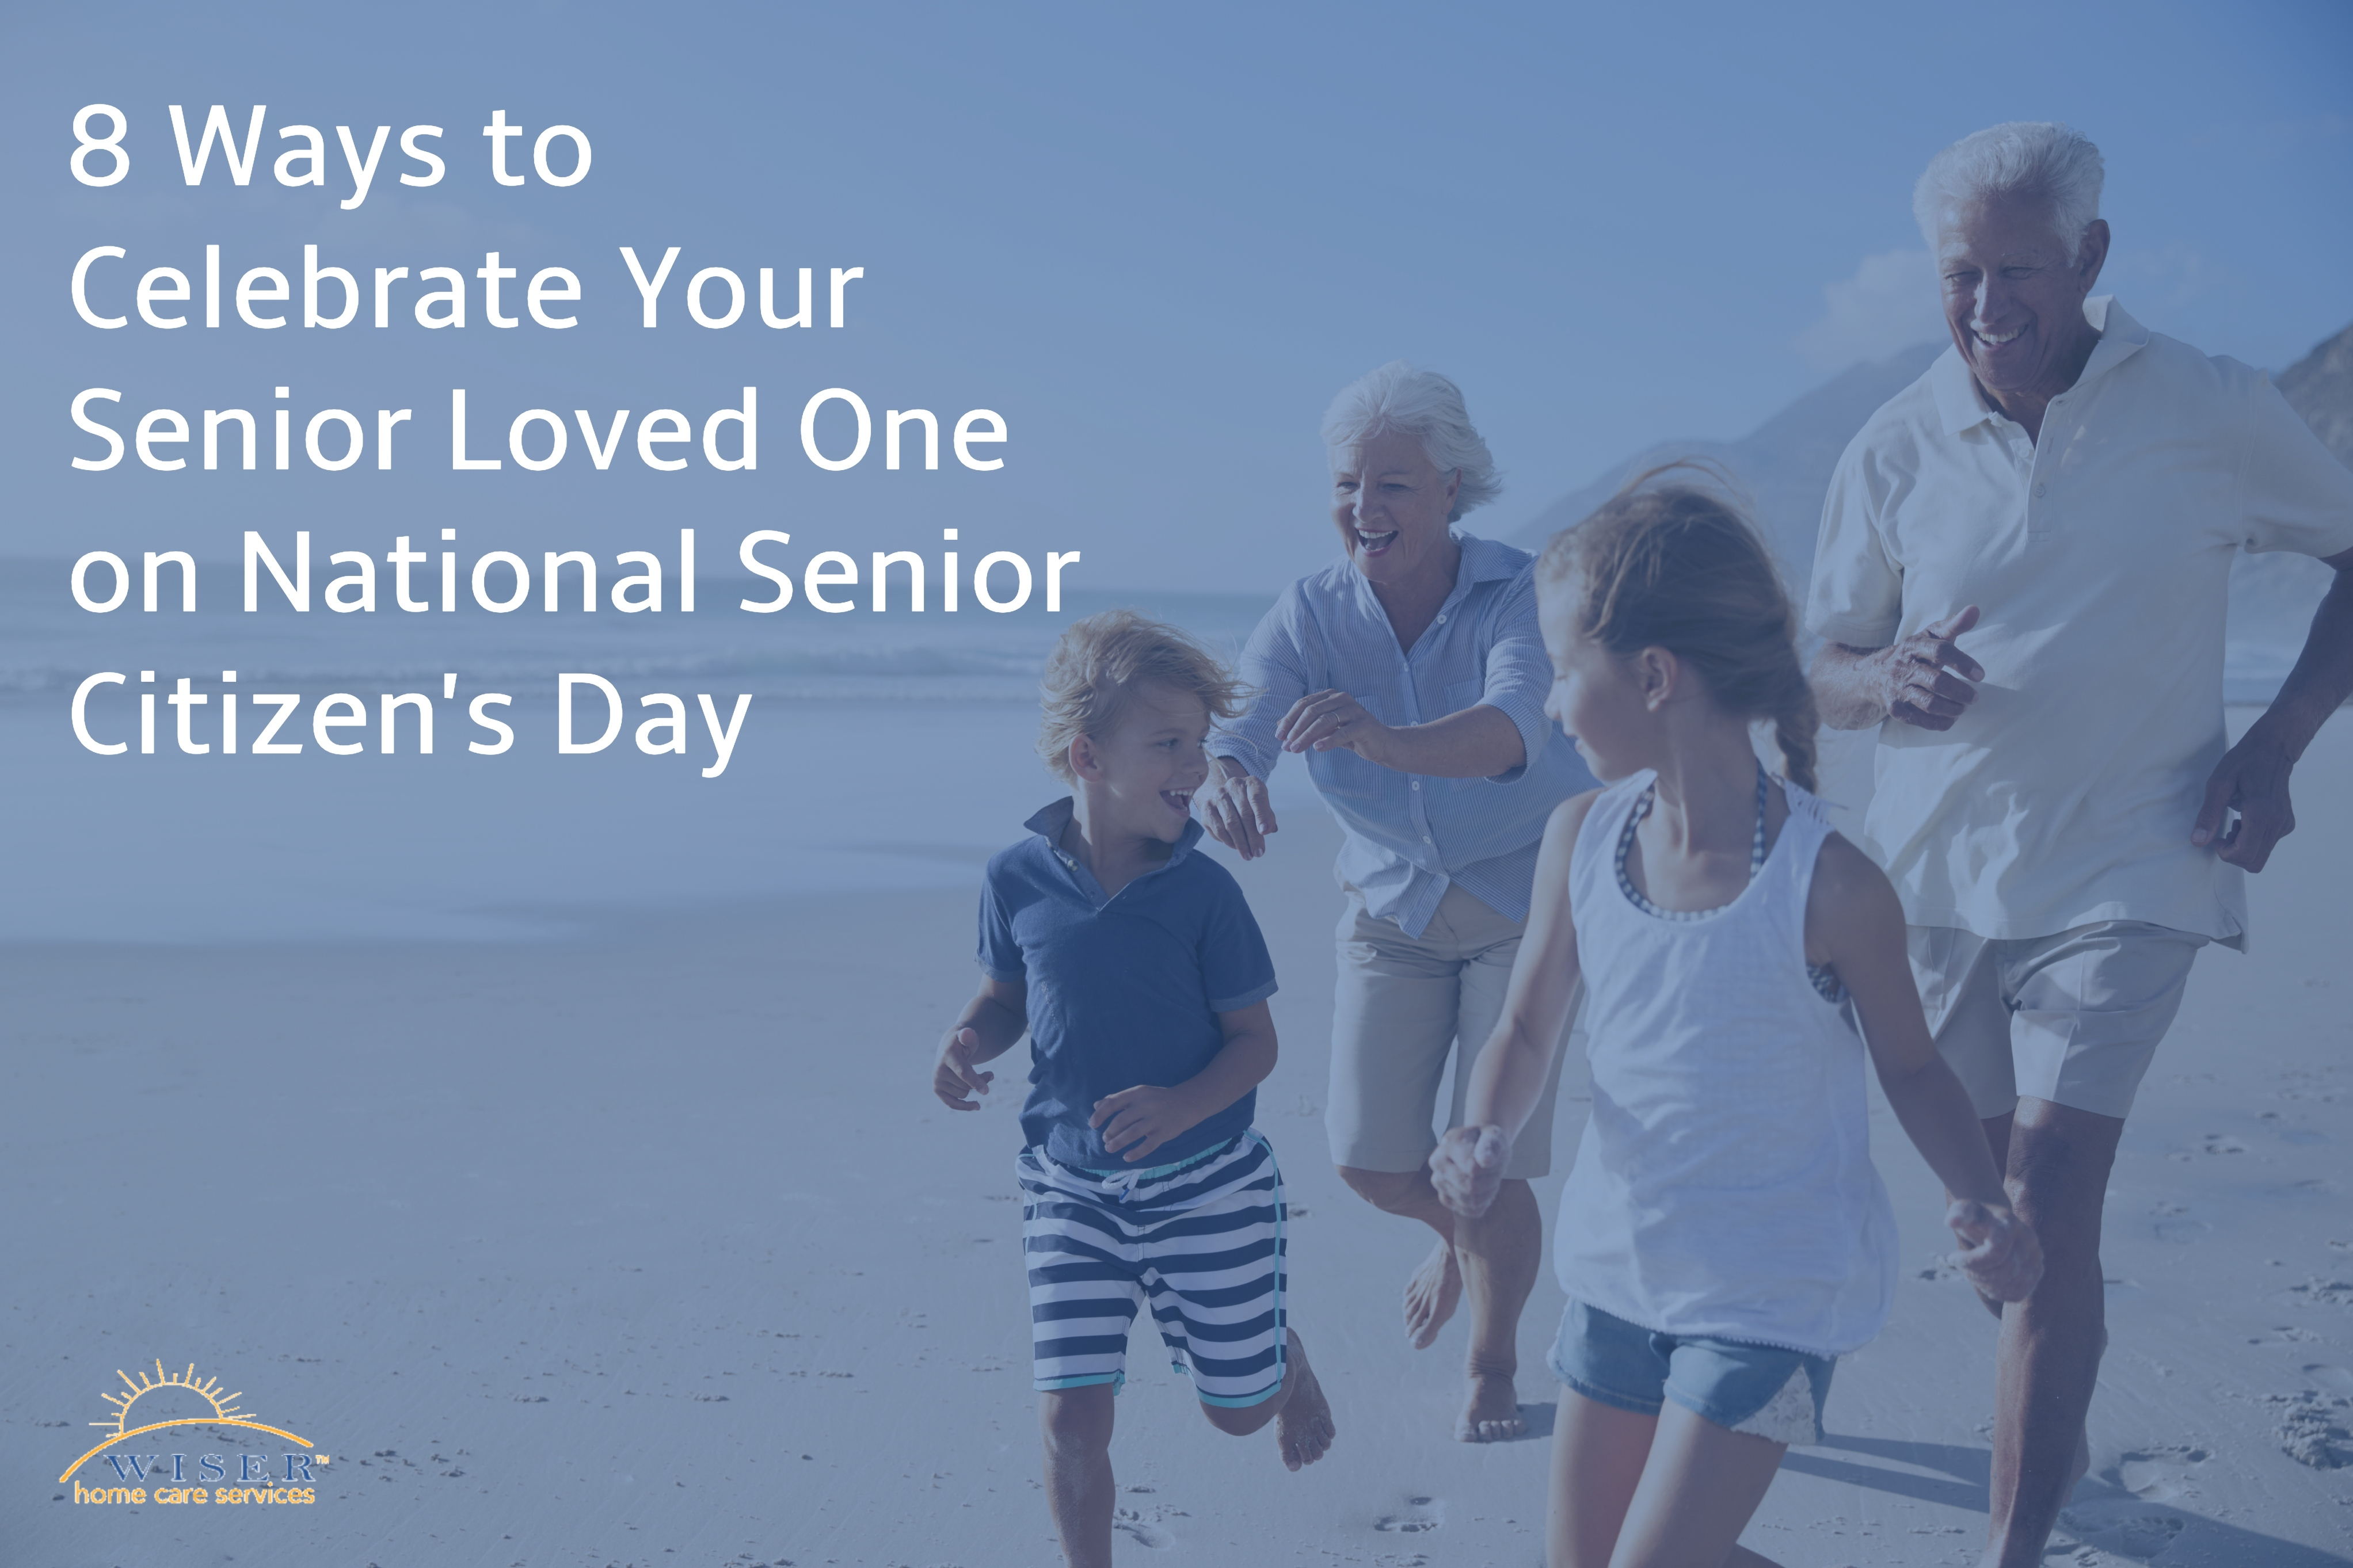 8 Ways to Celebrate Your Senior Loved One on Senior Citizen's Day